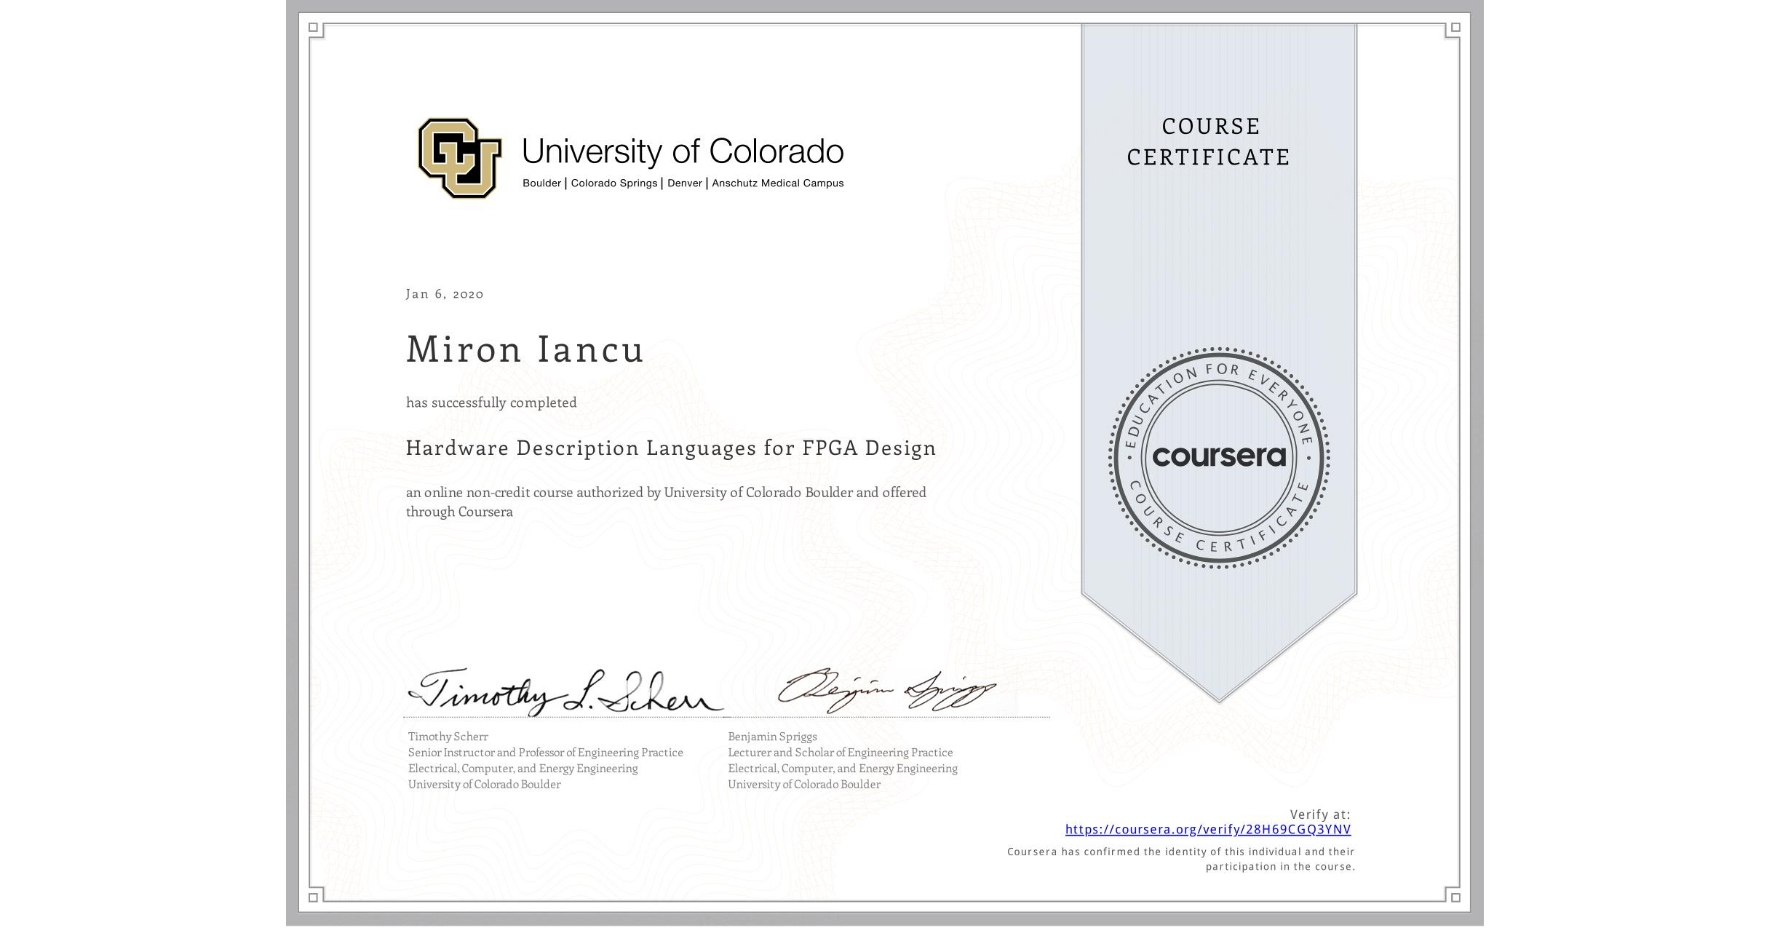 View certificate for Miron Iancu , Hardware Description Languages for FPGA Design, an online non-credit course authorized by University of Colorado Boulder and offered through Coursera